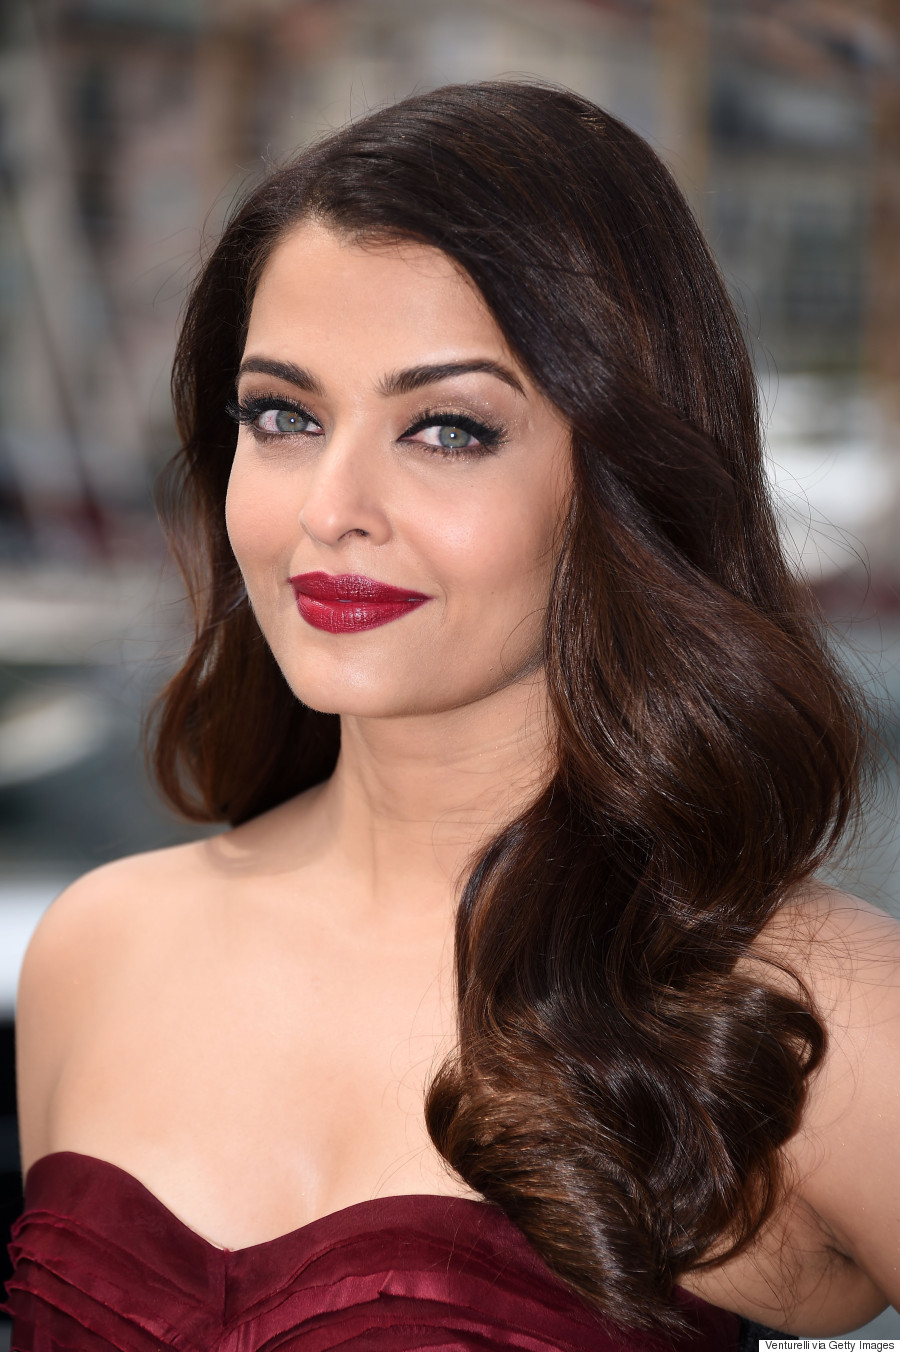 Aishwarya Rai Delivers The Drama At Cannes Film Festival In